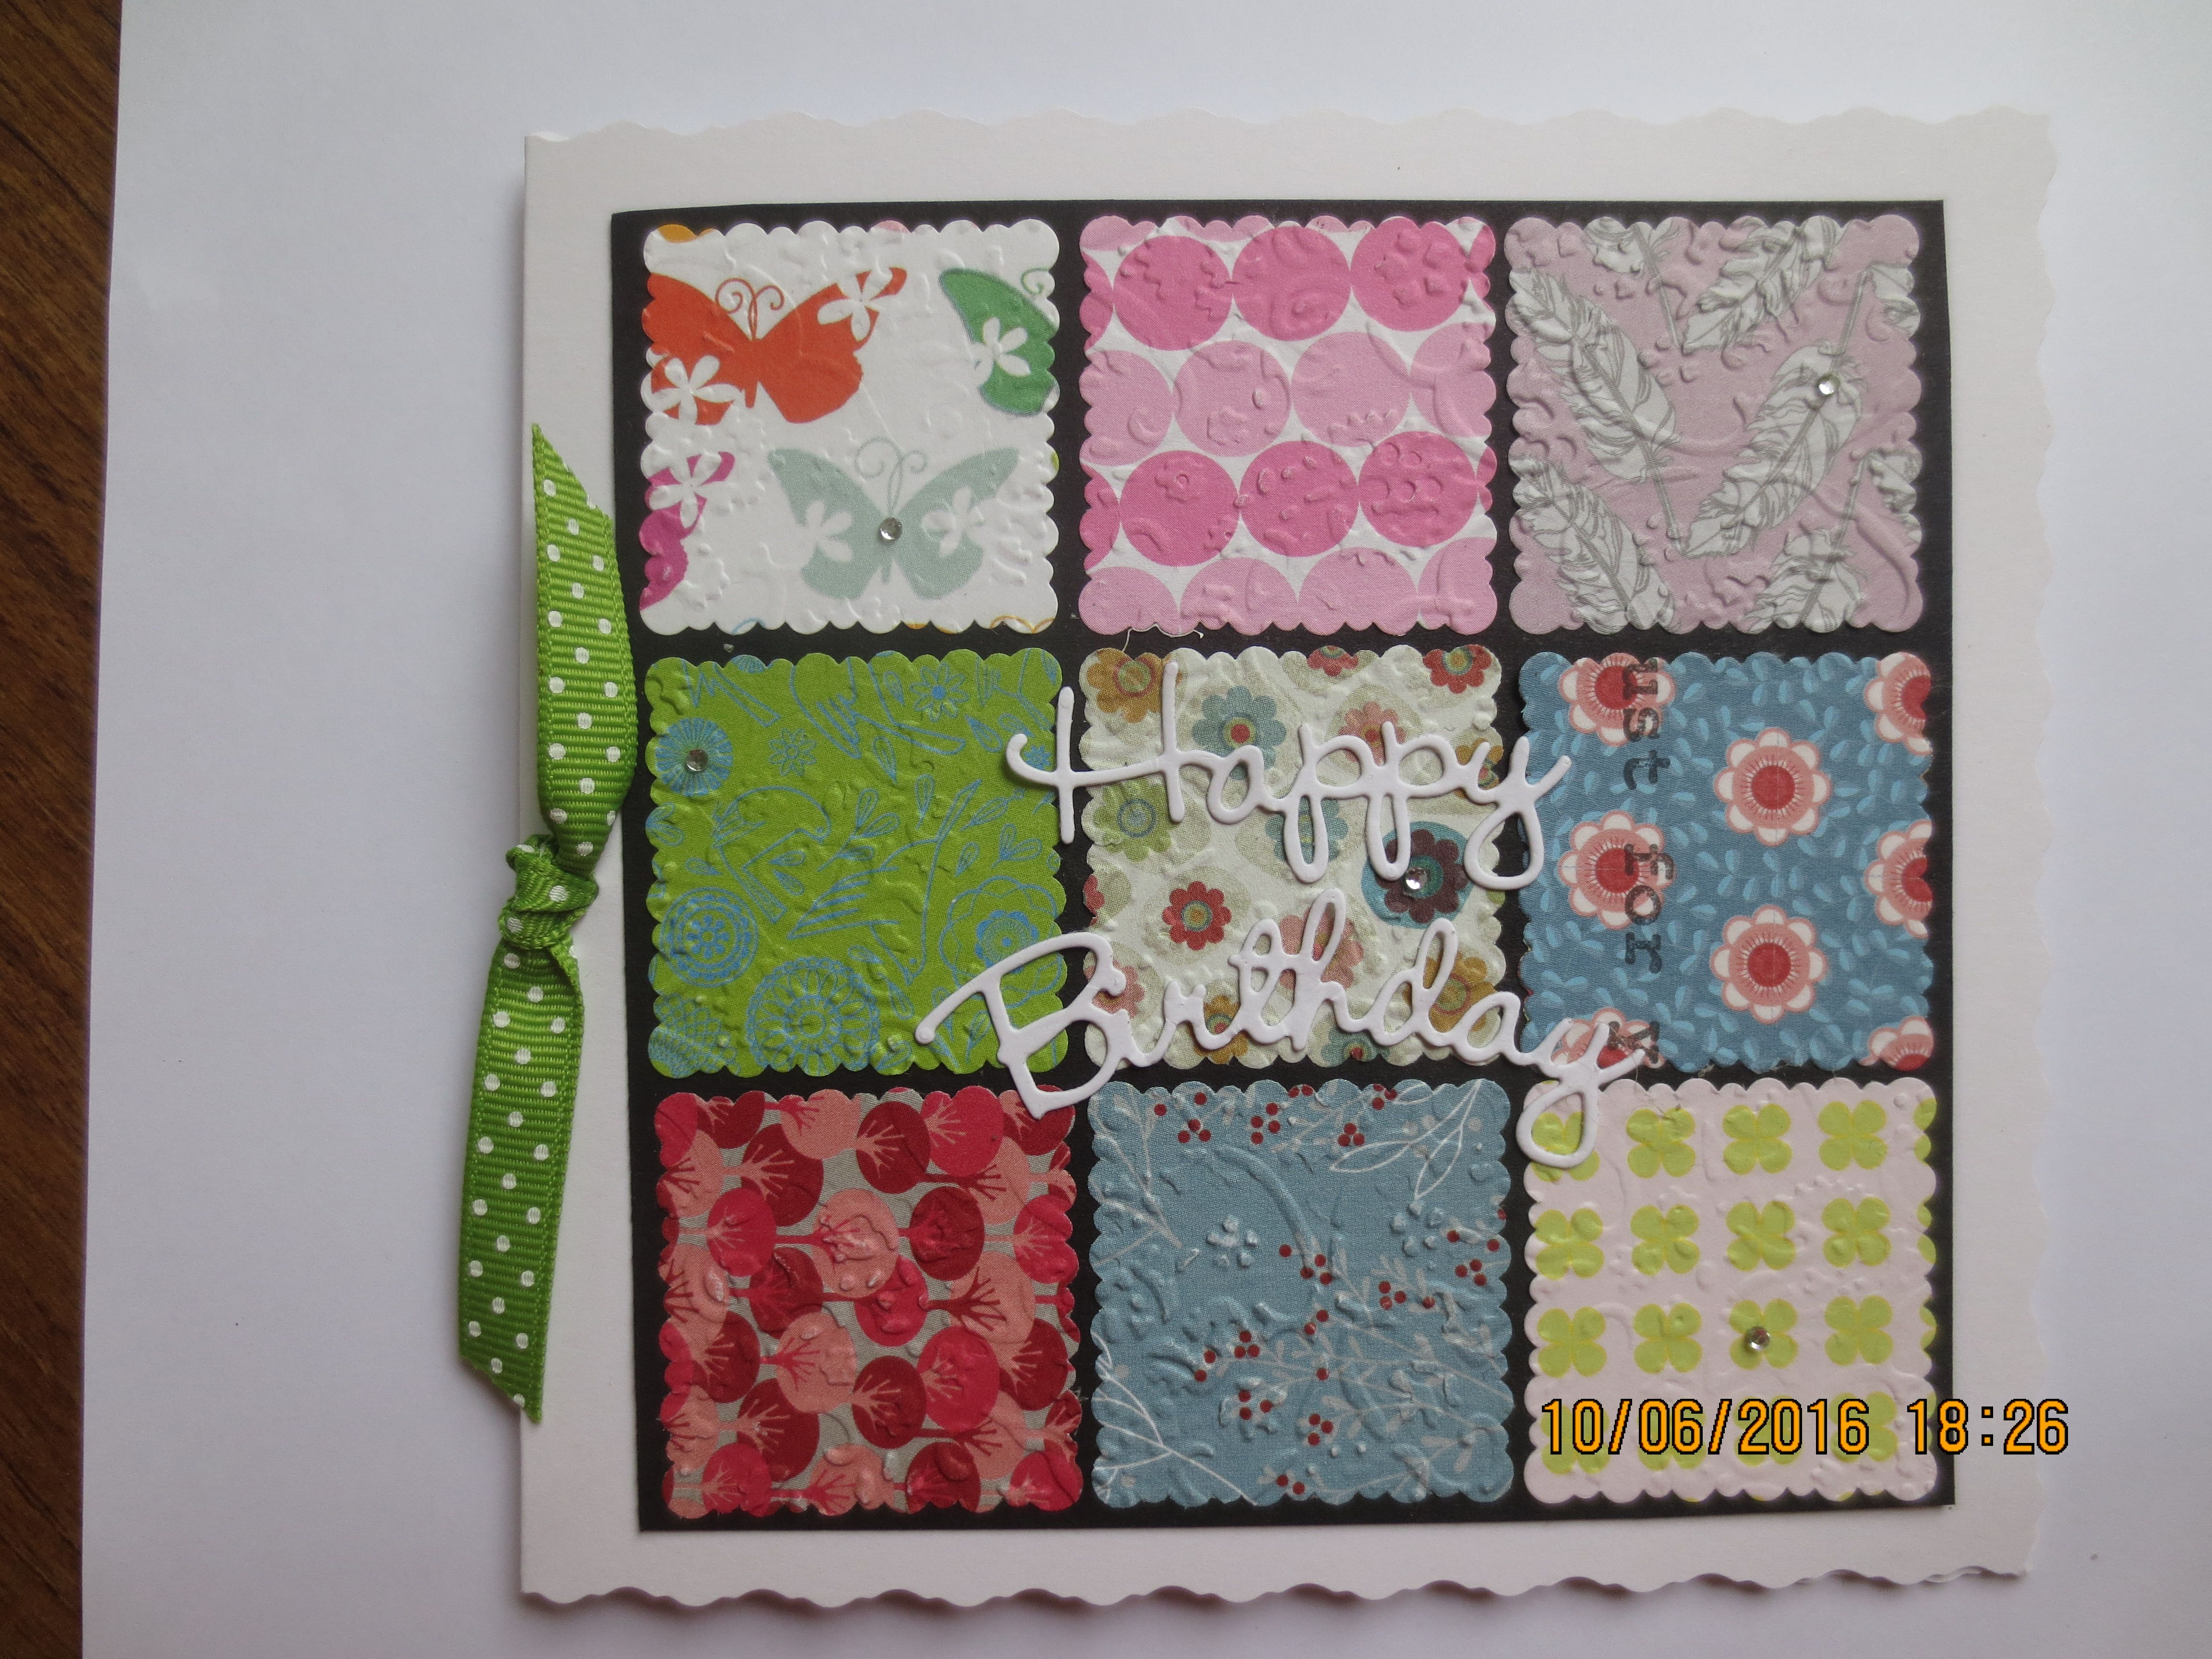 Multi colour patchwork using scraps of paper.